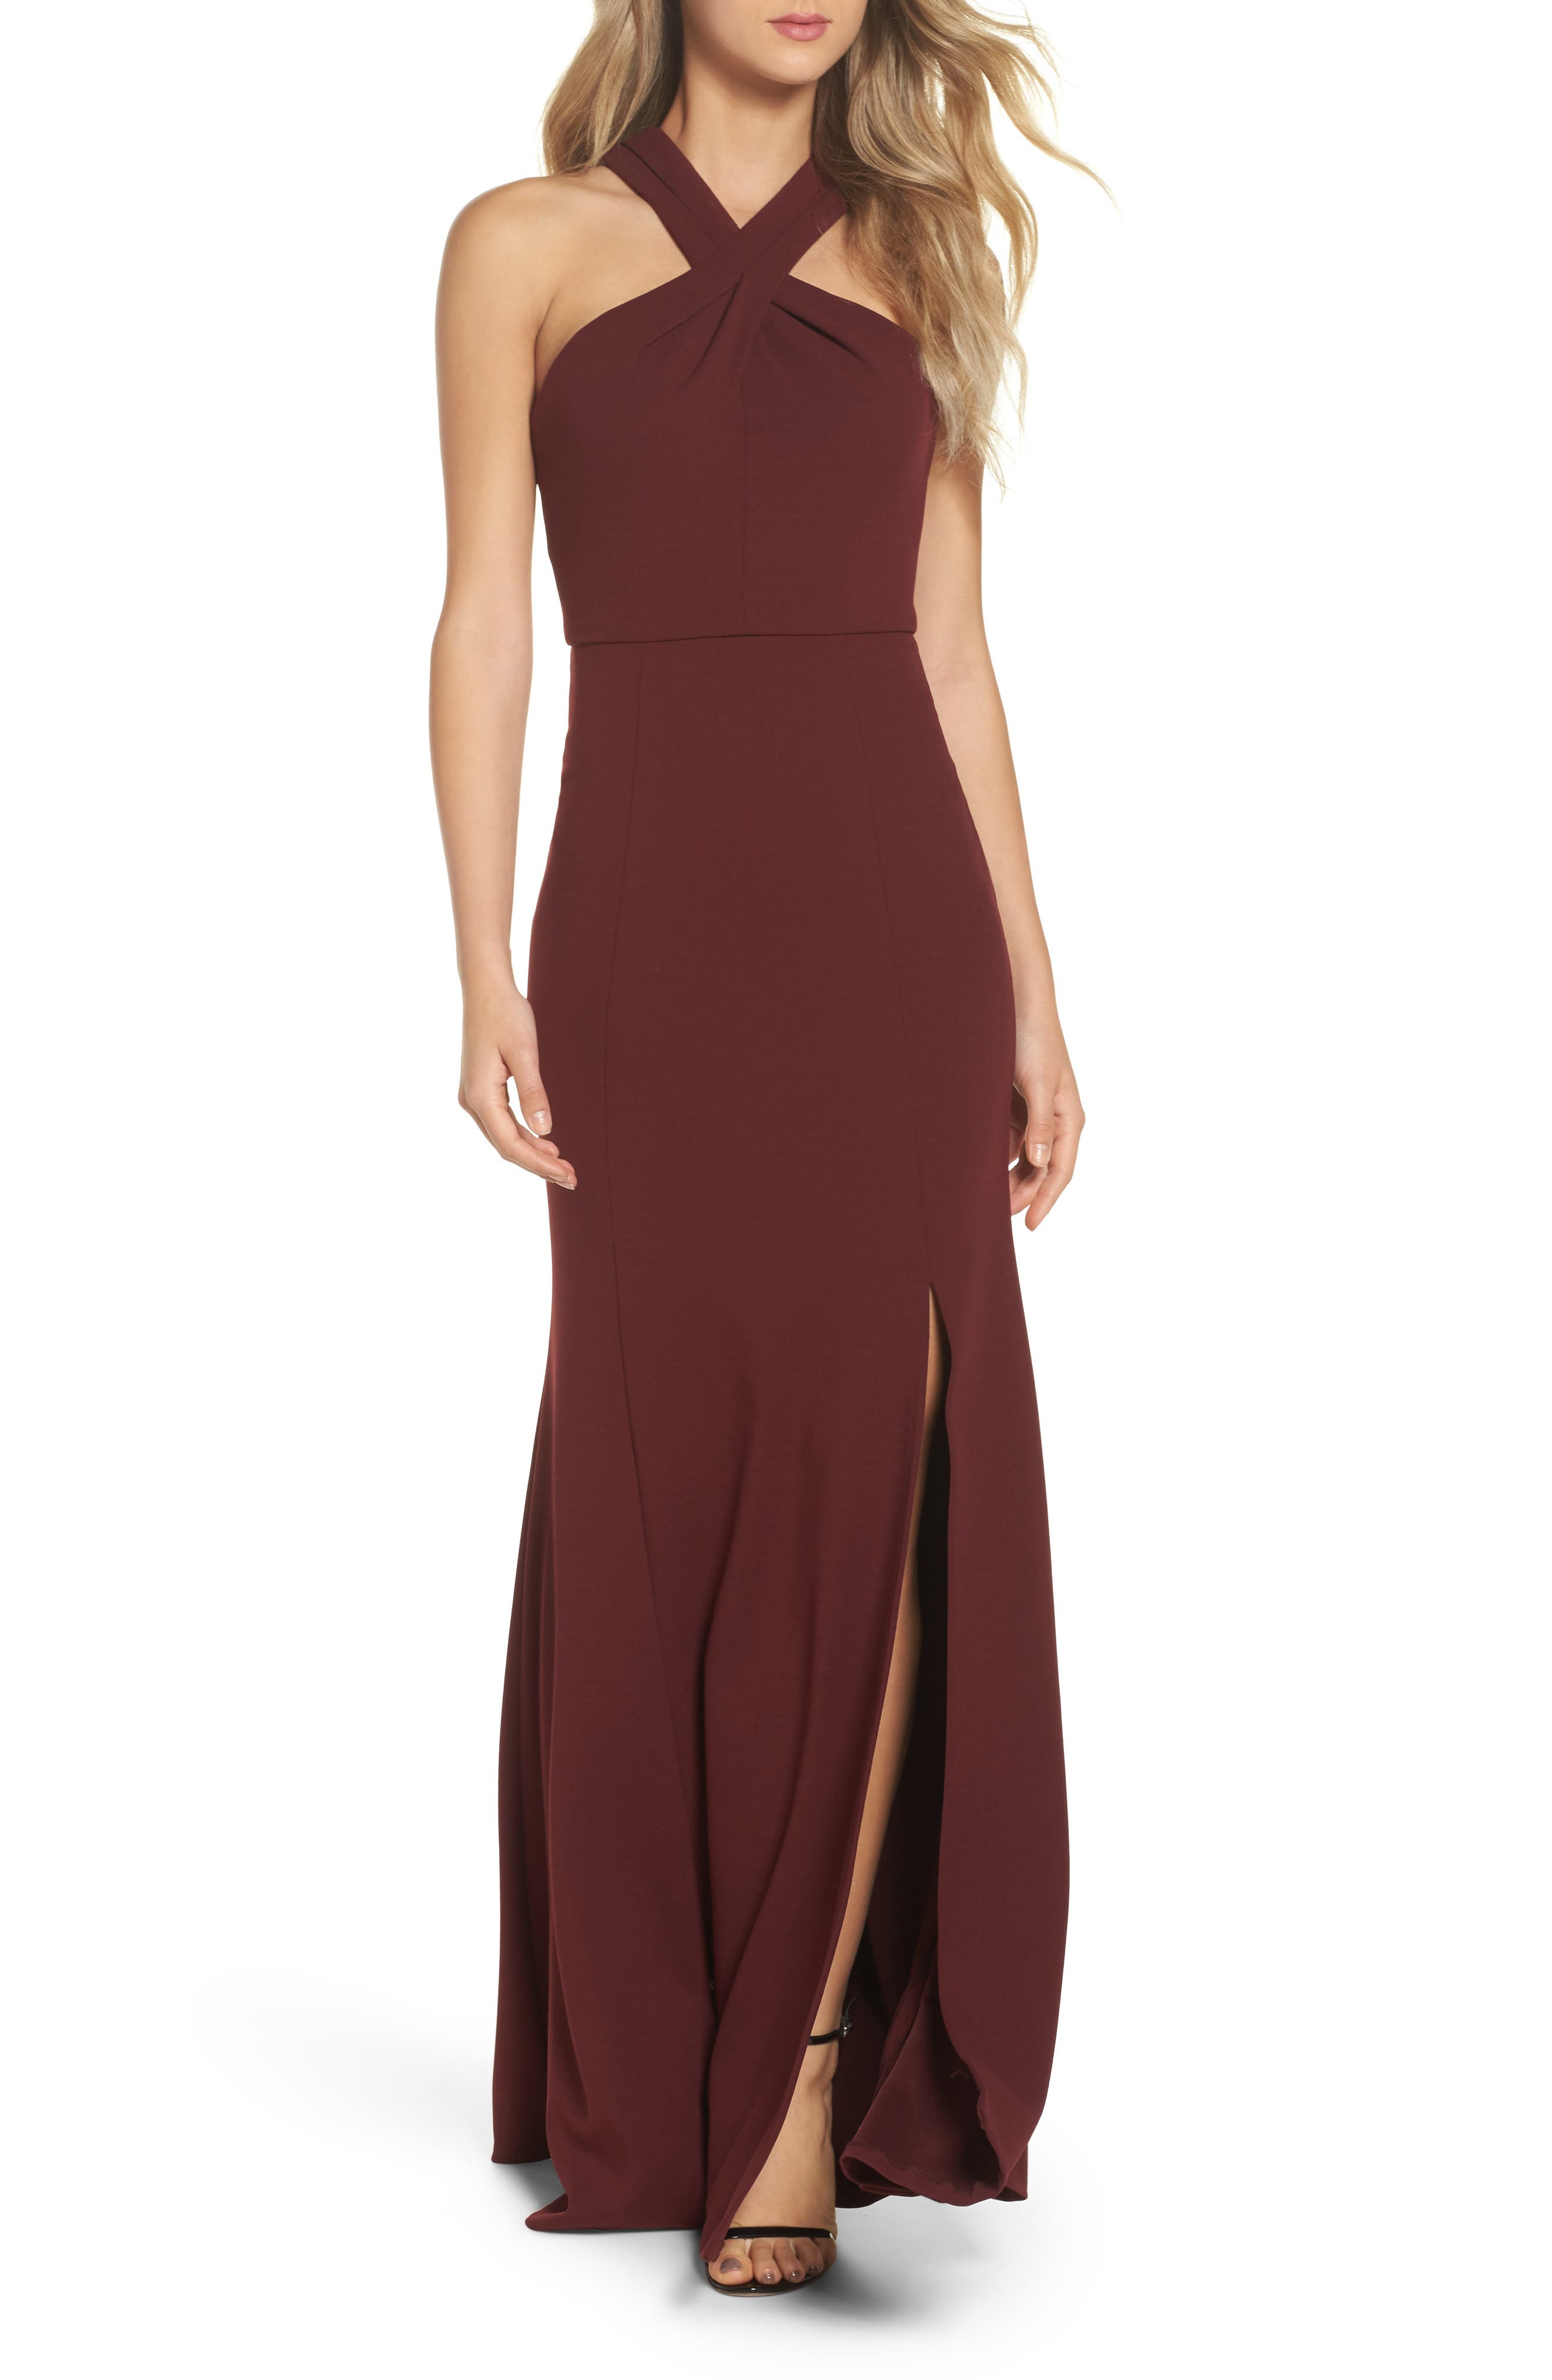 Jenny Yoo Kayleigh Cross Front Crepe Knit Gown, Burgundy